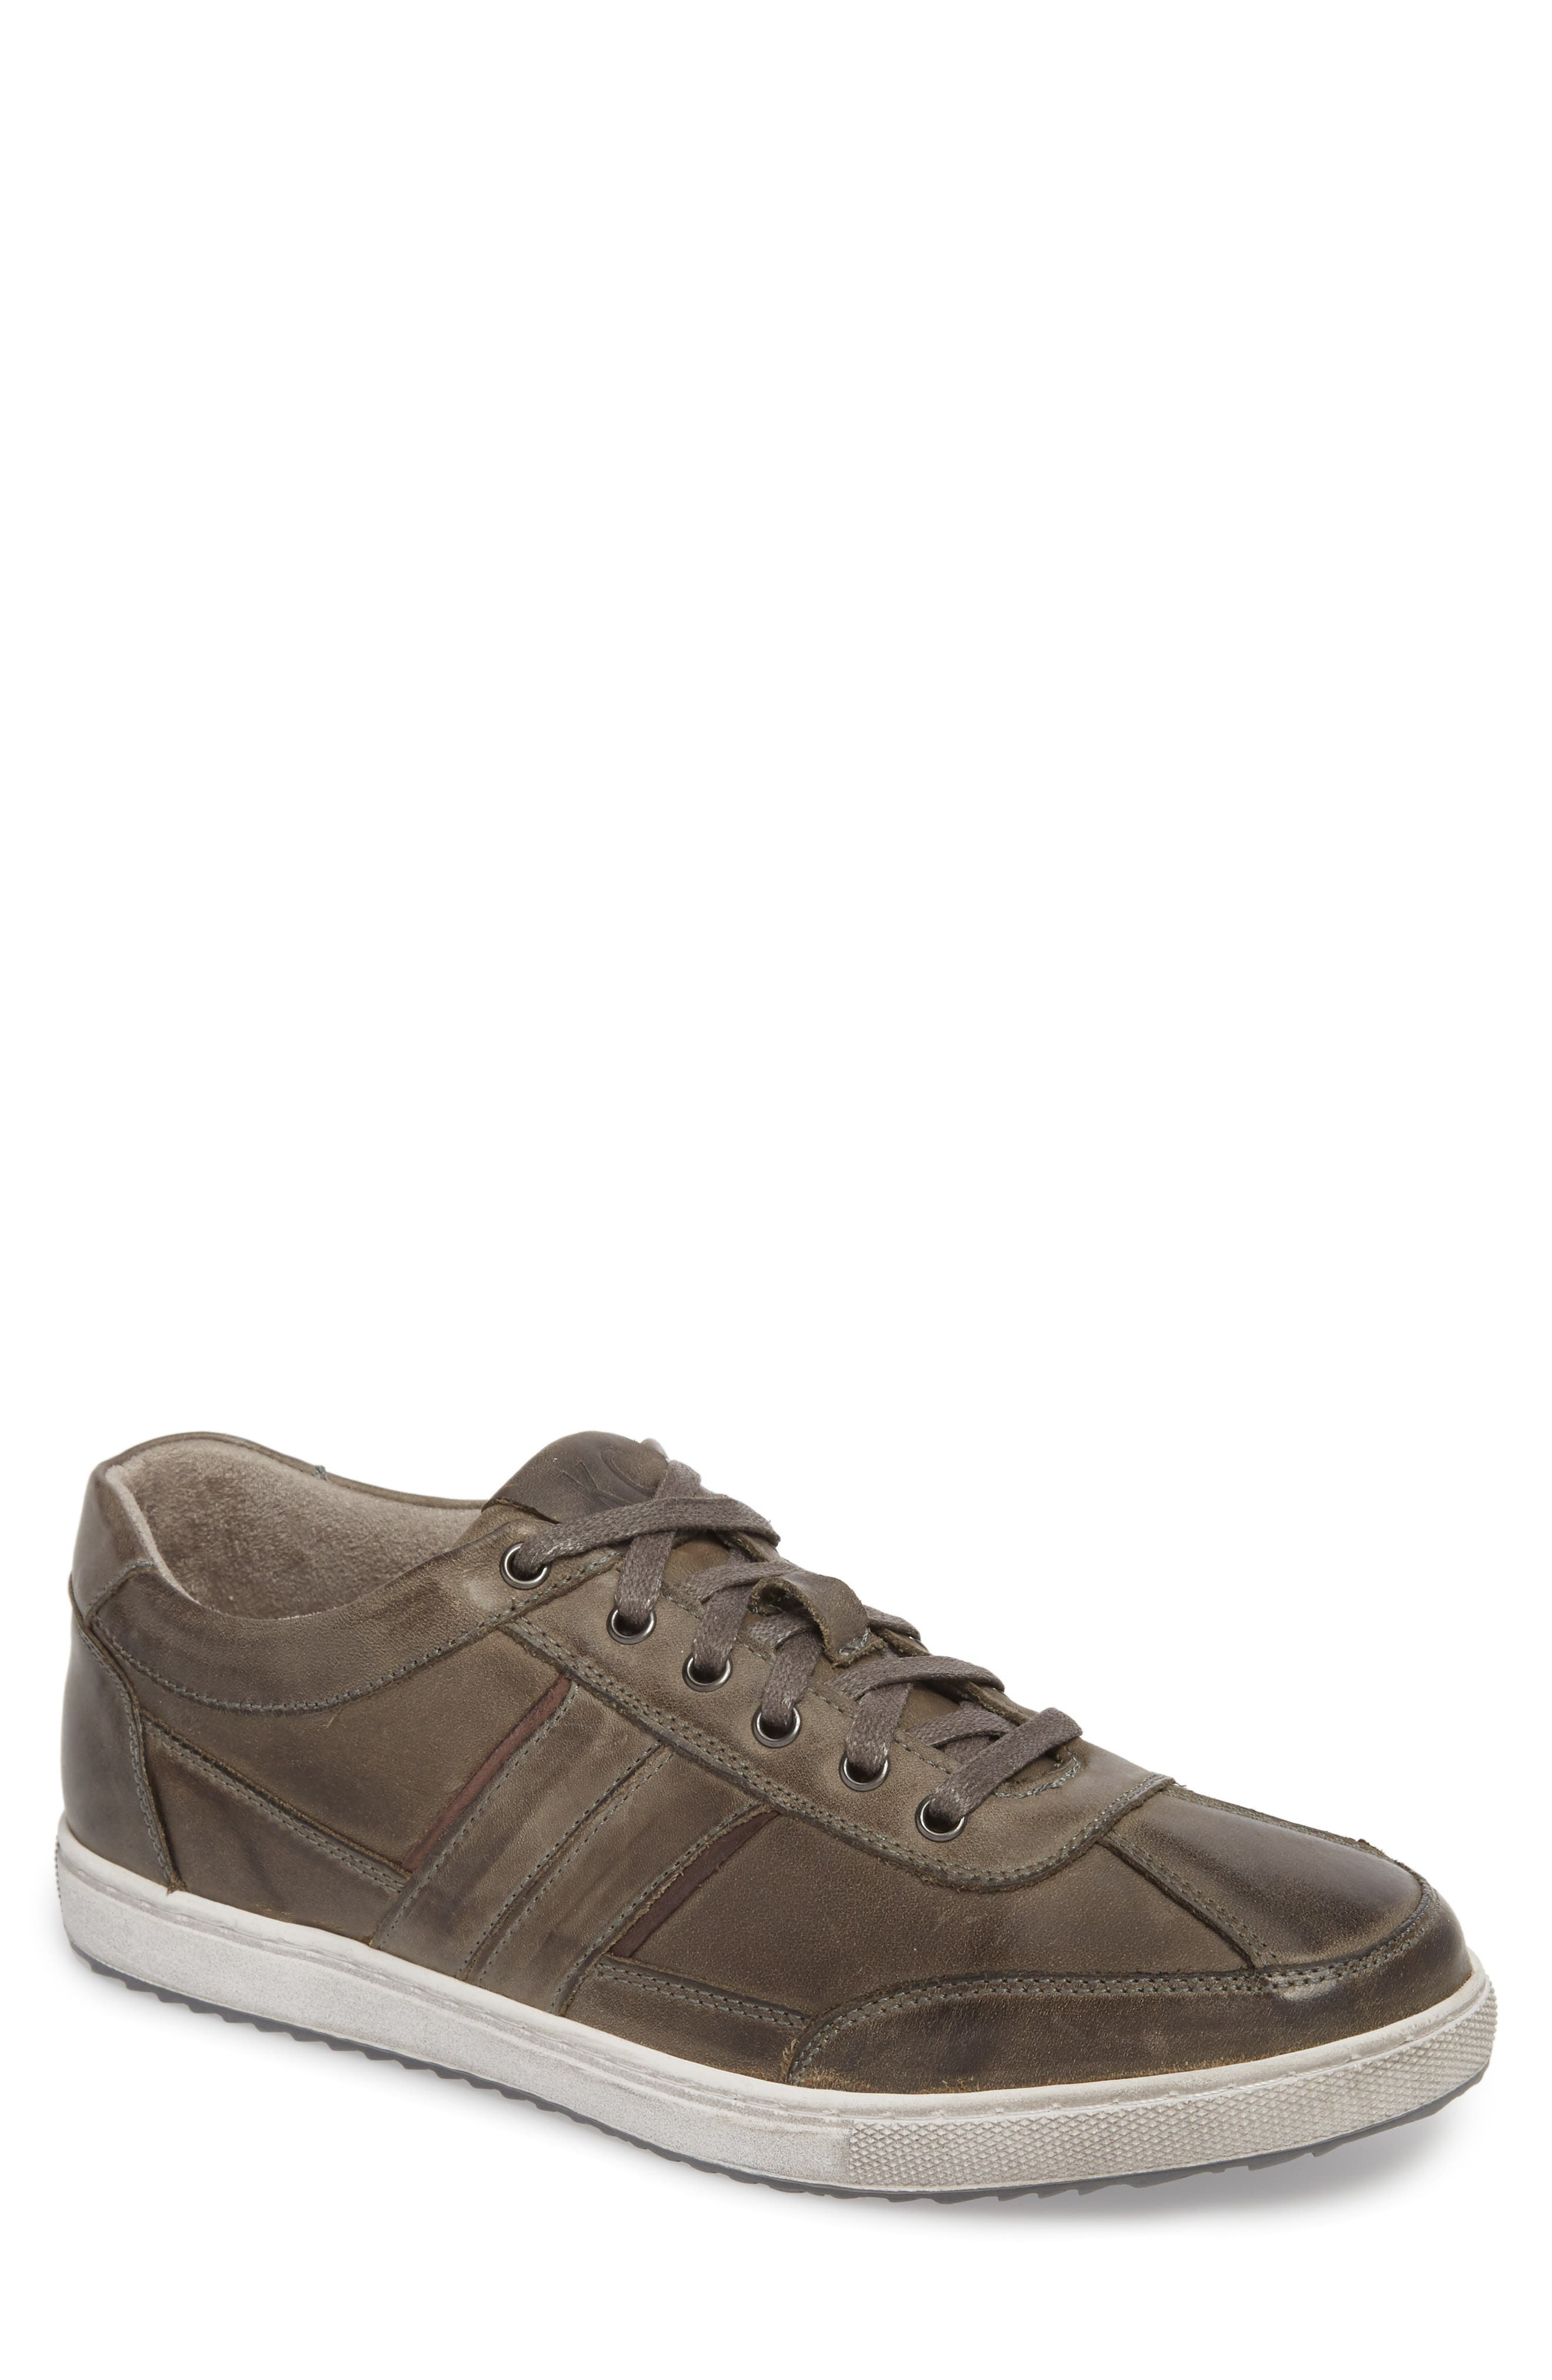 Reaction Kenneth Cole Sprinter Low Top